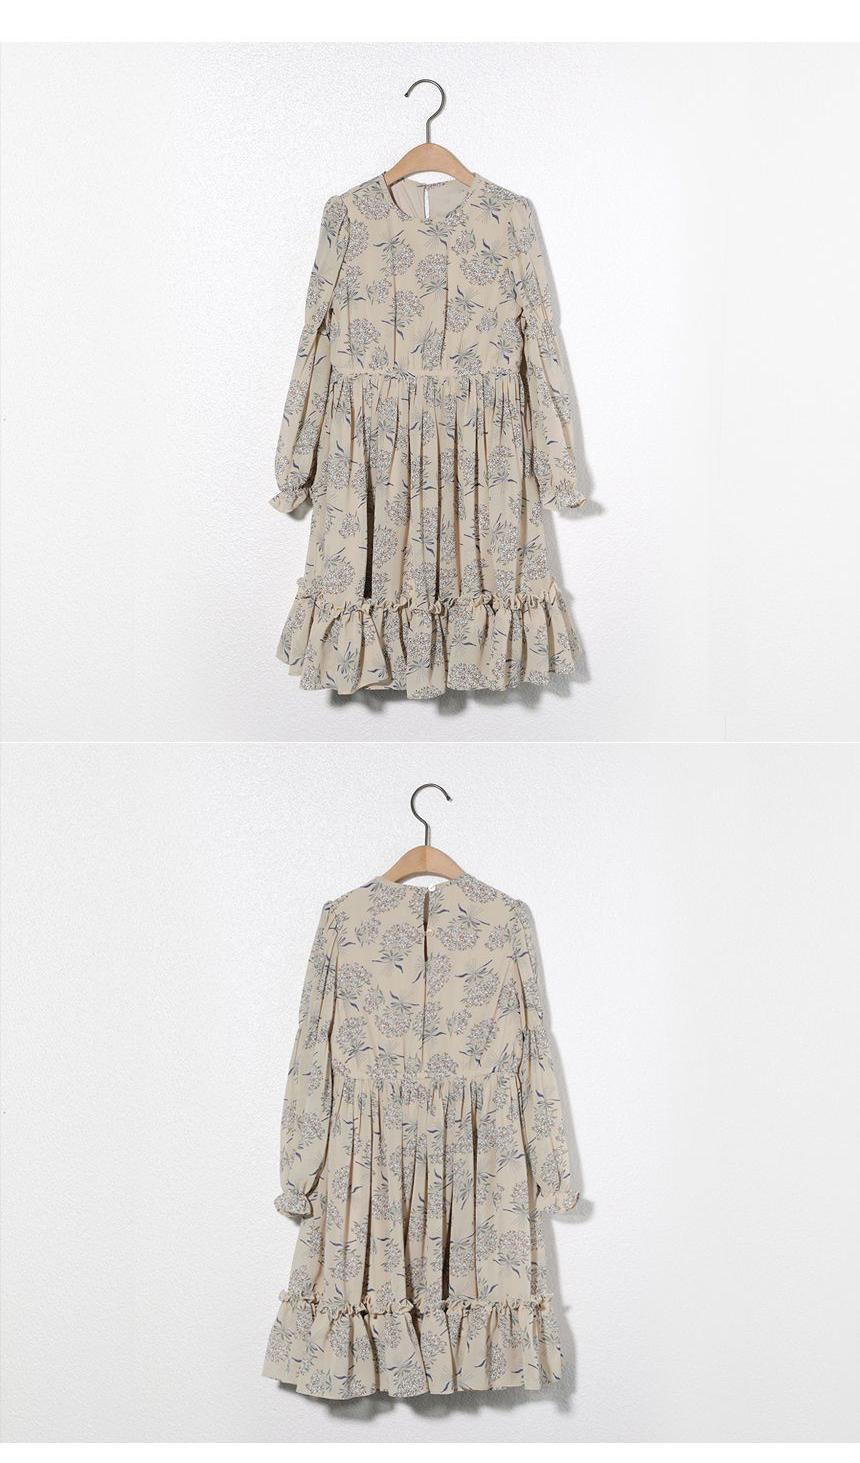 chiffon floral pattern dresses for girls of 12 10 11 14 2 4 6 years old High Quality children dresses 8 year long sleeve clothes 5 7 9 13 15 16 Years little teenage girls spring dresses for girls children girl spring dress (4)